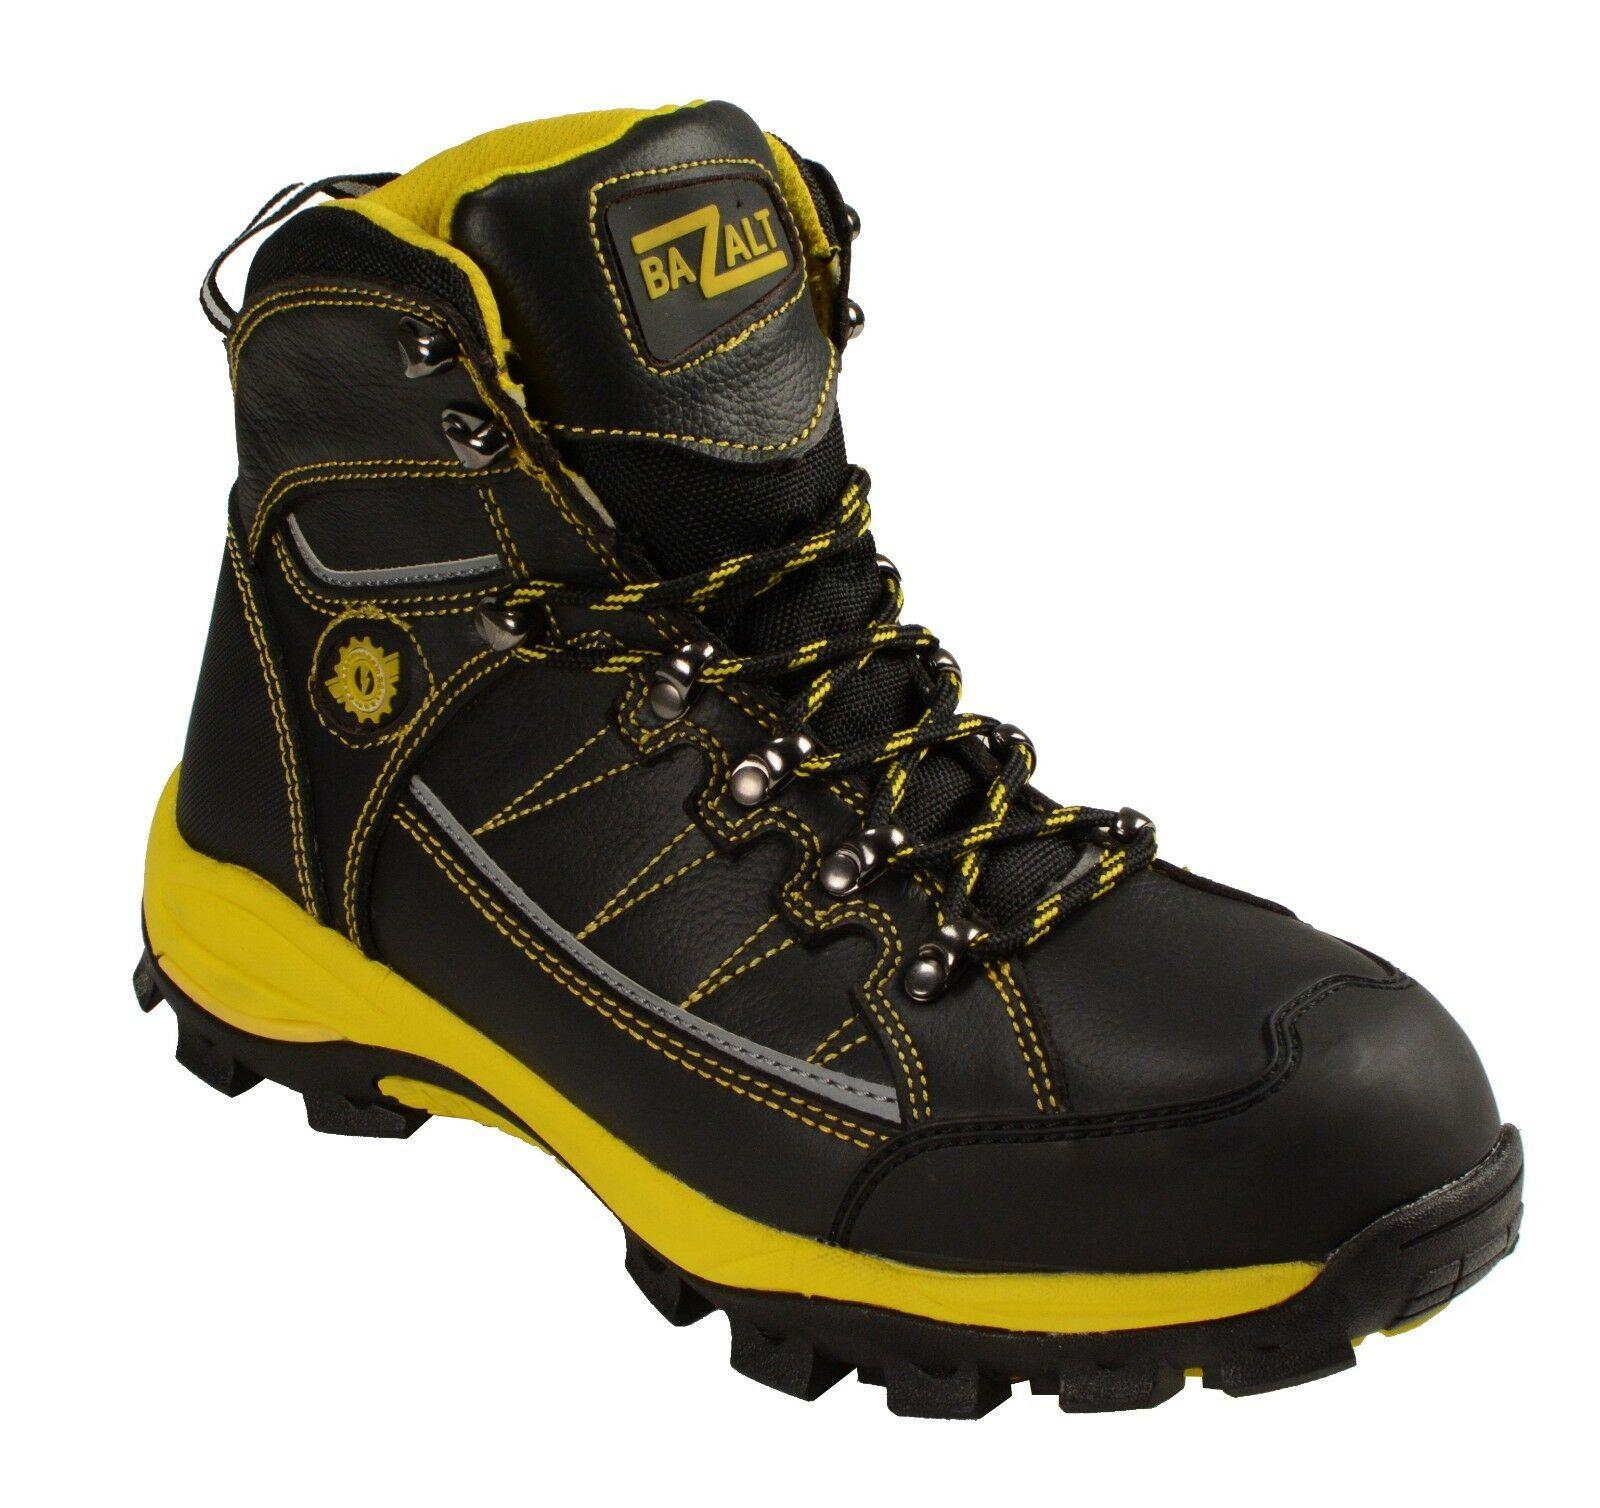 Men's Black & Yellow Waterproof & Frost Proof Leather Boots